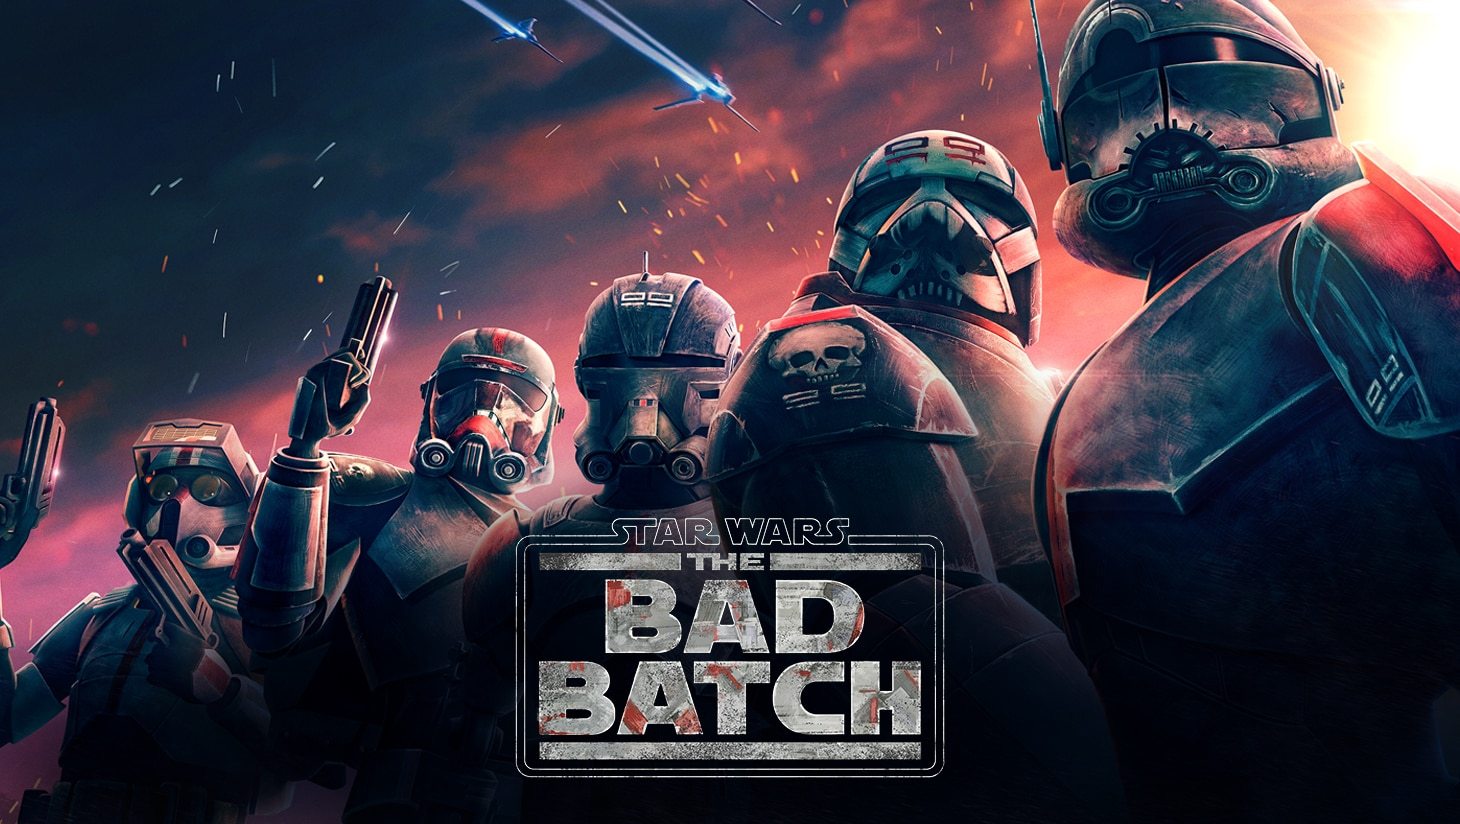 Star Wars: The Bad Batch keyart